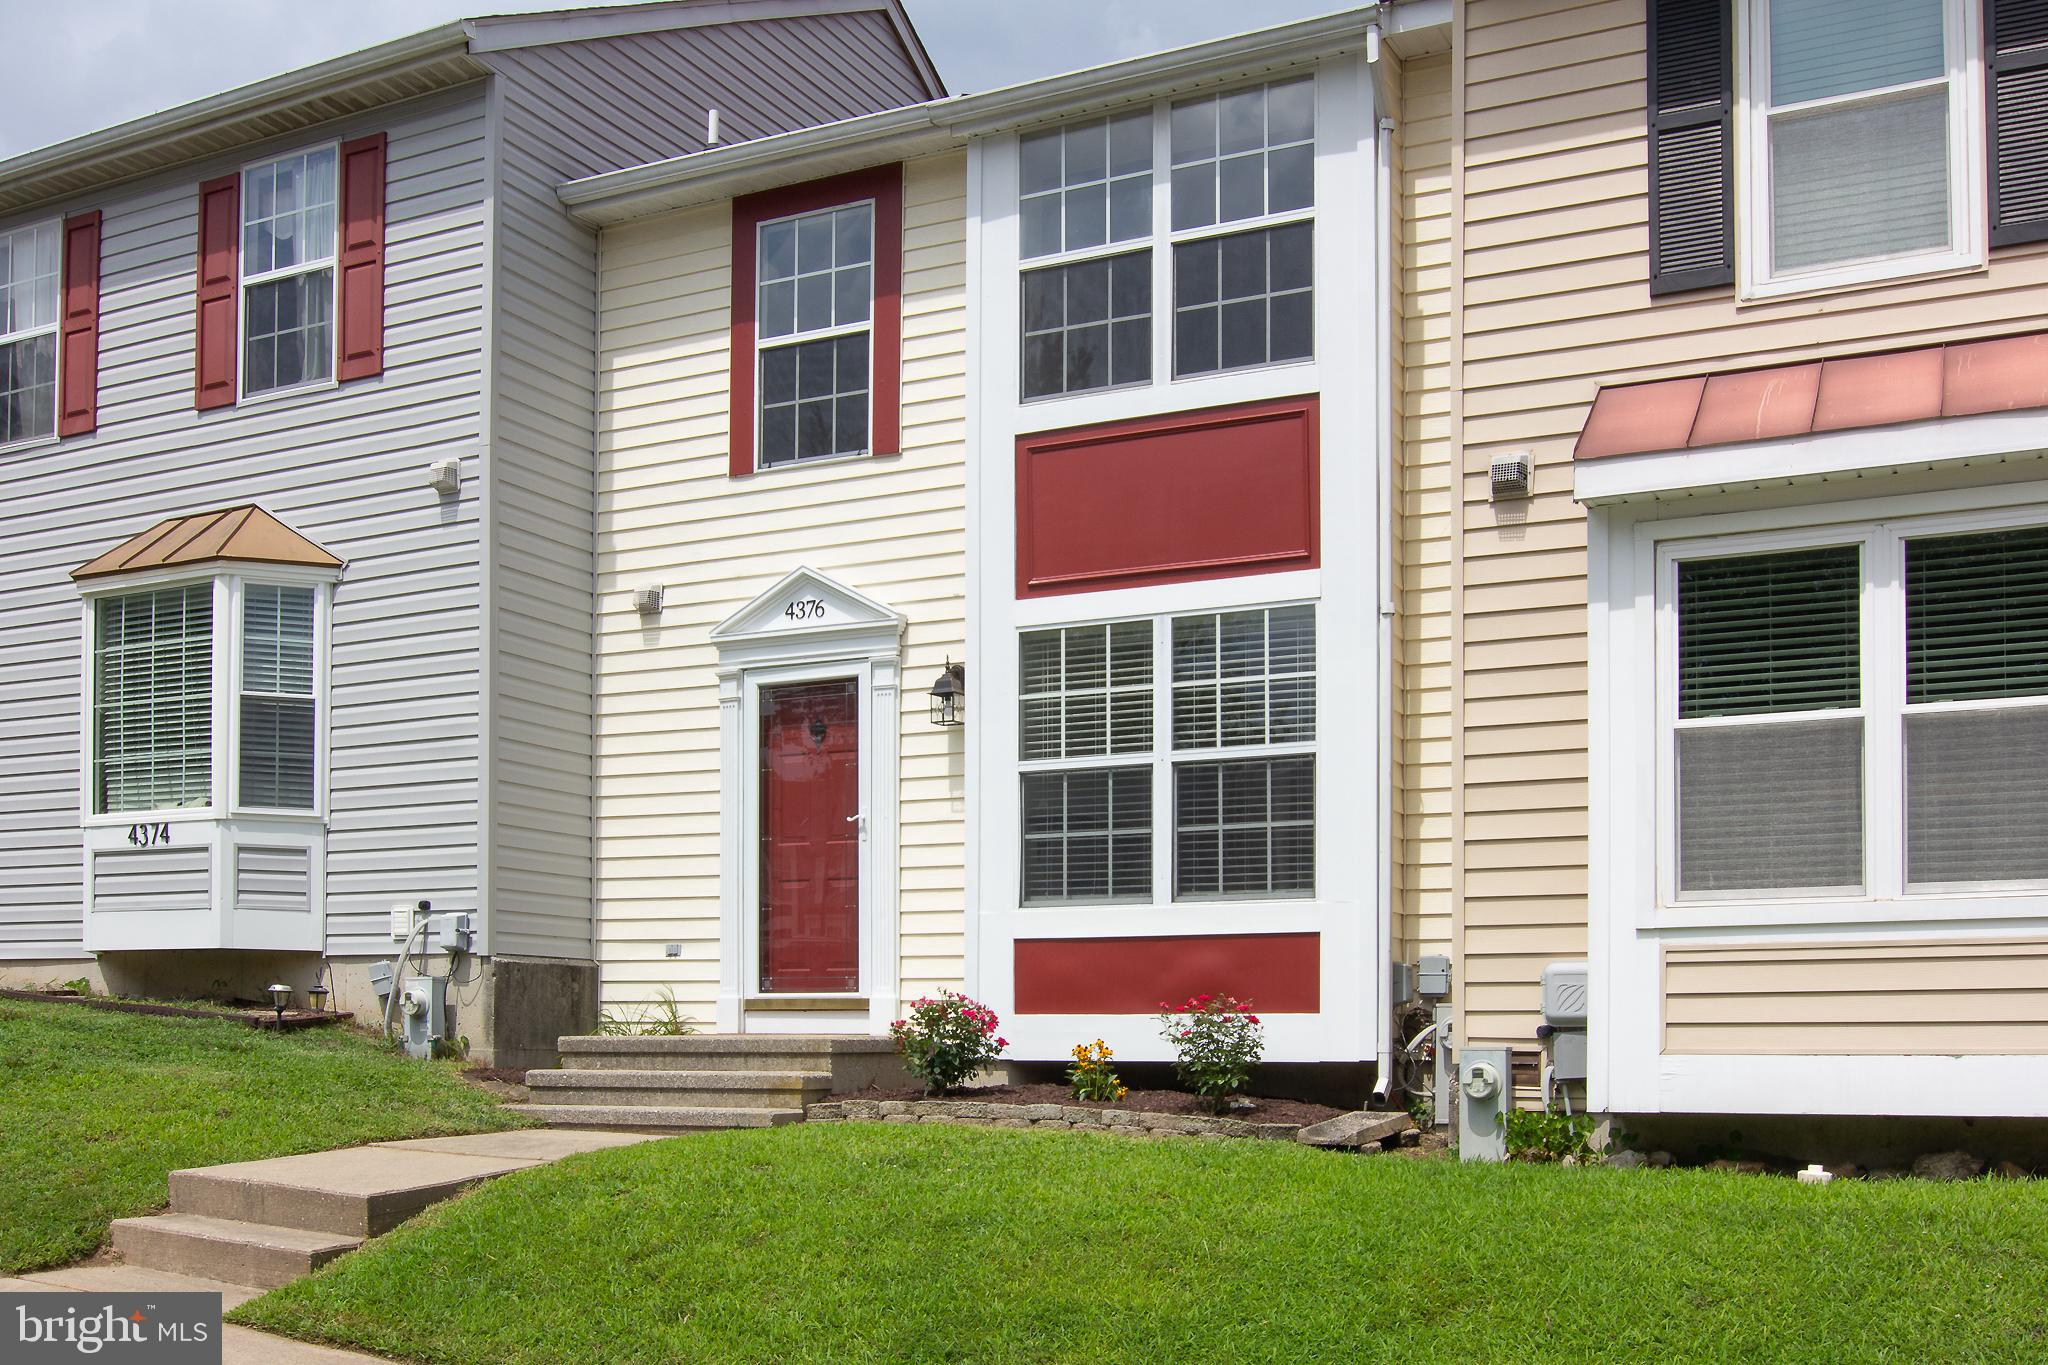 Turnkey townhome in the heart of Roberts' Field! This property has so much to offer including new HV